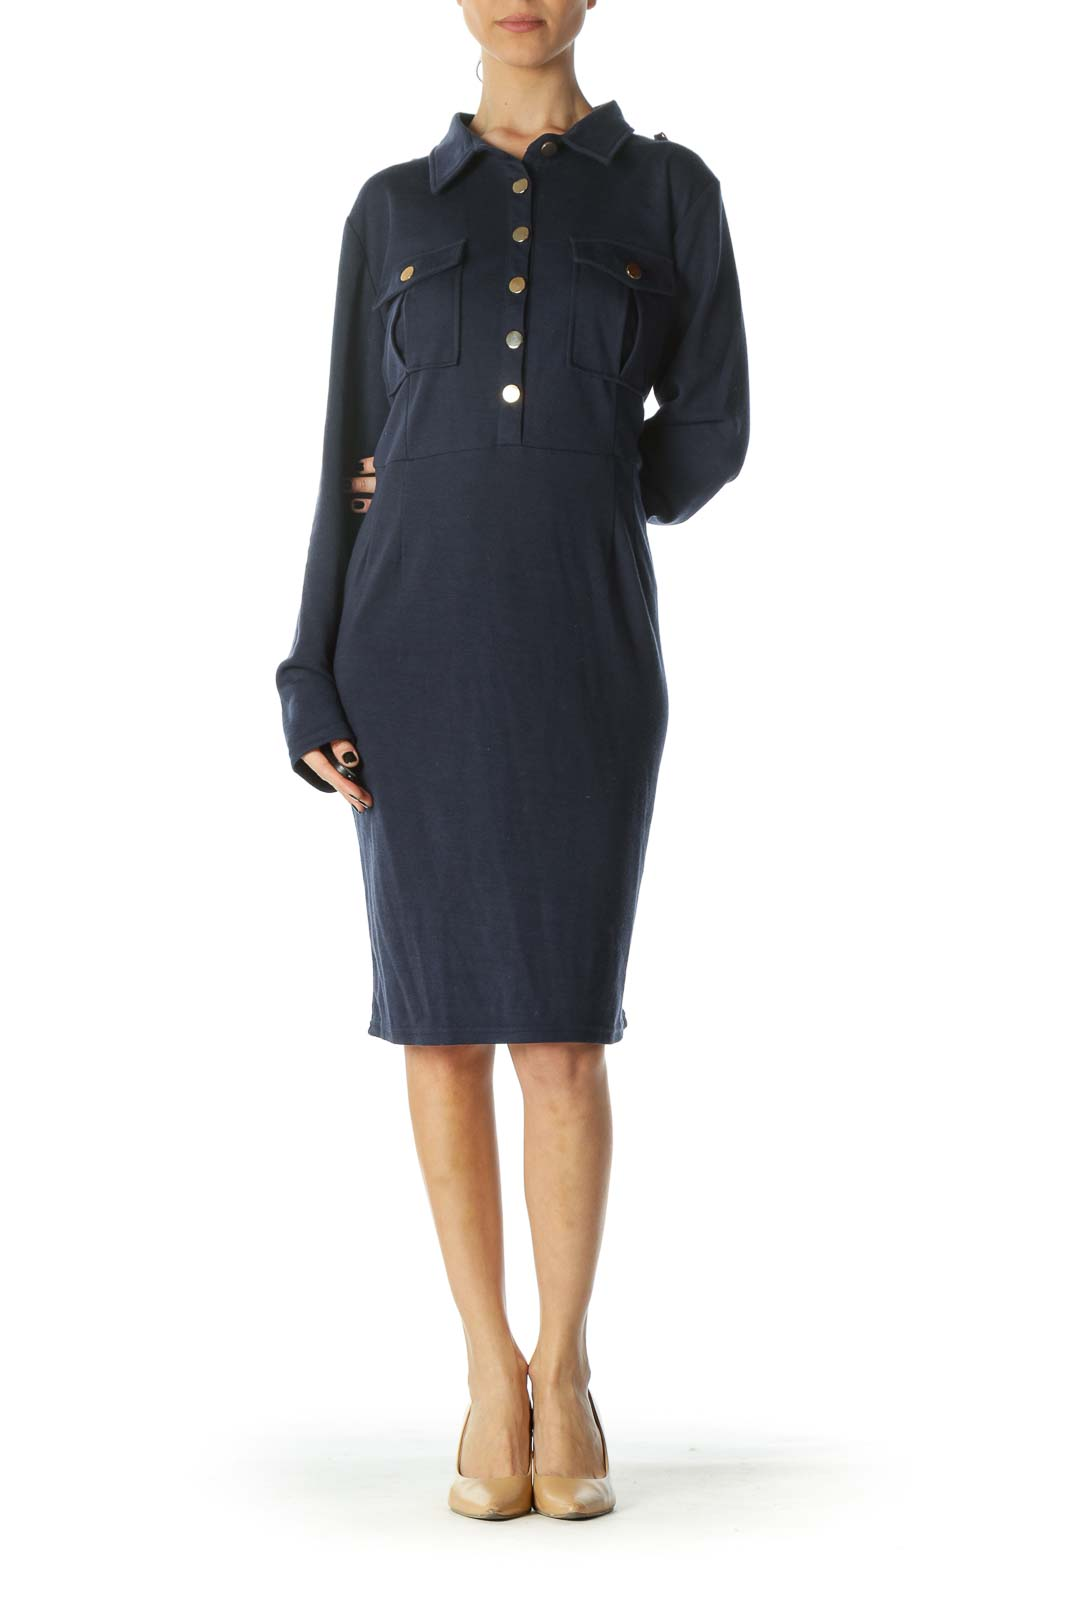 Navy Gold-Buttoned Casual Day Dress